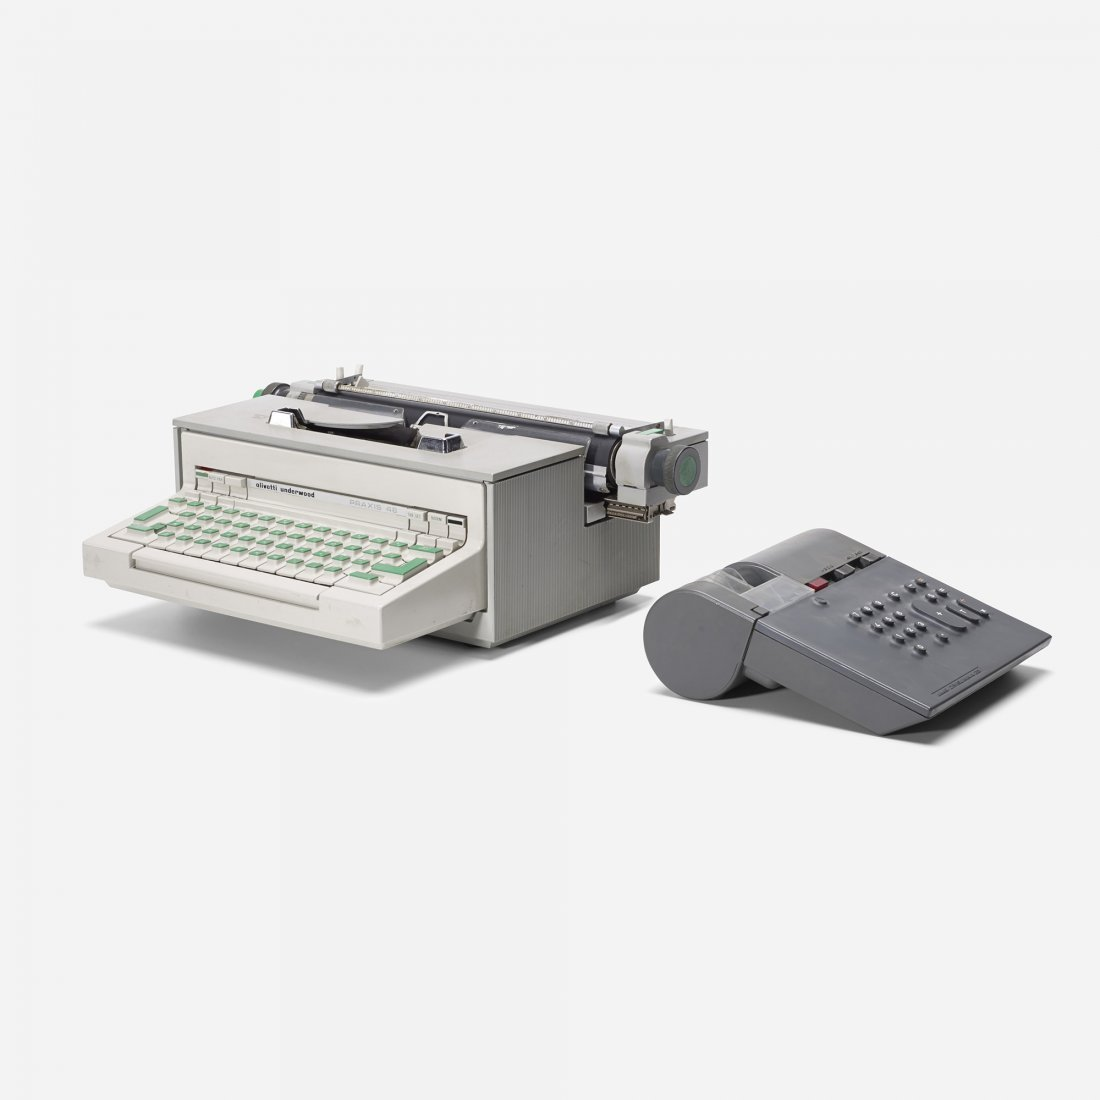 Ettore Sottsass Praxis typewriter and calculator